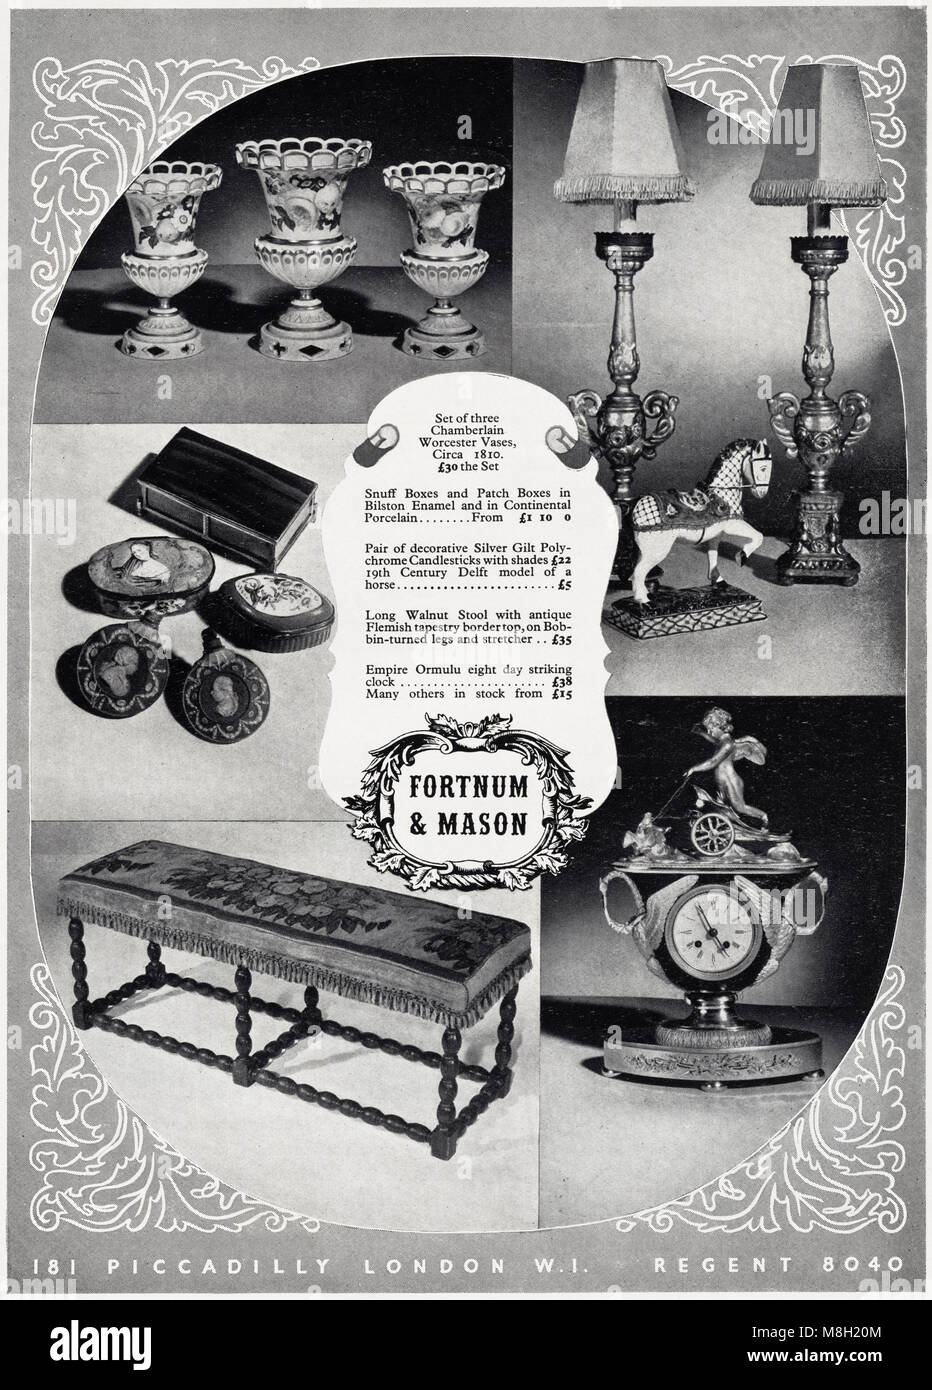 1950s Original Old Vintage Advertisement Advertising Luxury Household Items From Fortnum Mason Of Piccadilly London England UK In English Magazine Circa